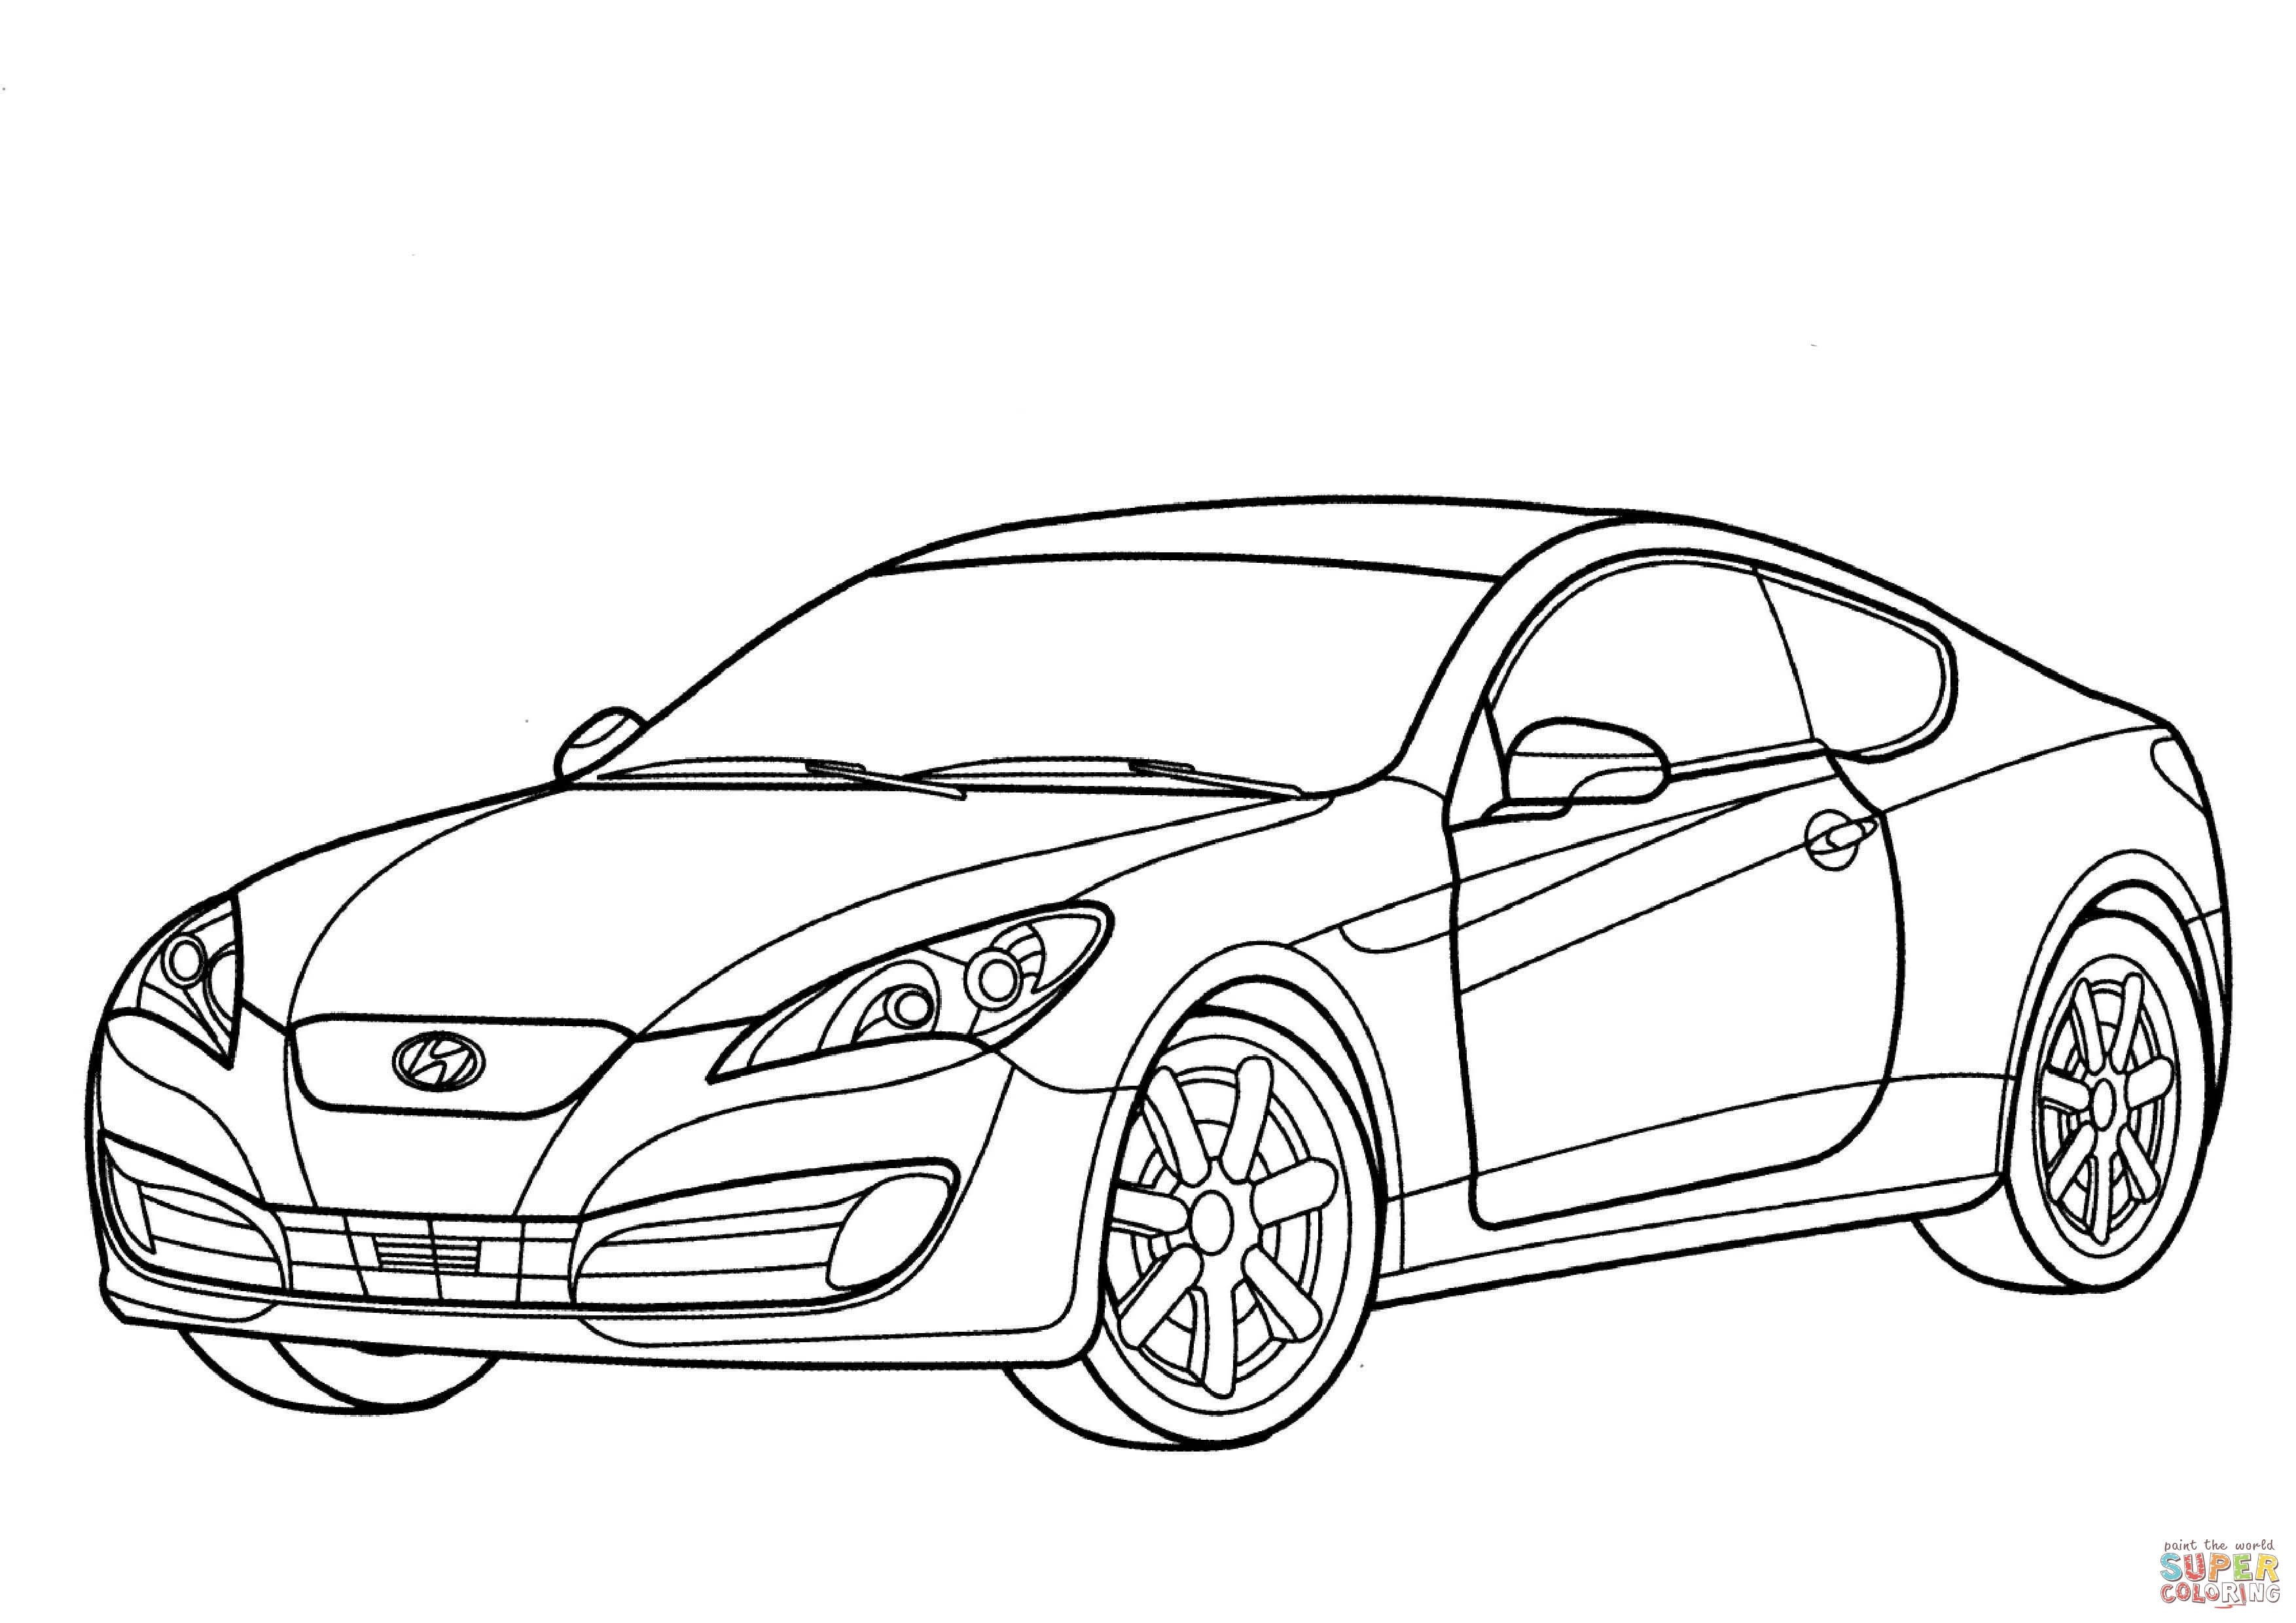 3508x2480 Super Car Mclaren Lm Coloring Page Awesome Nissan Gt R Coloring